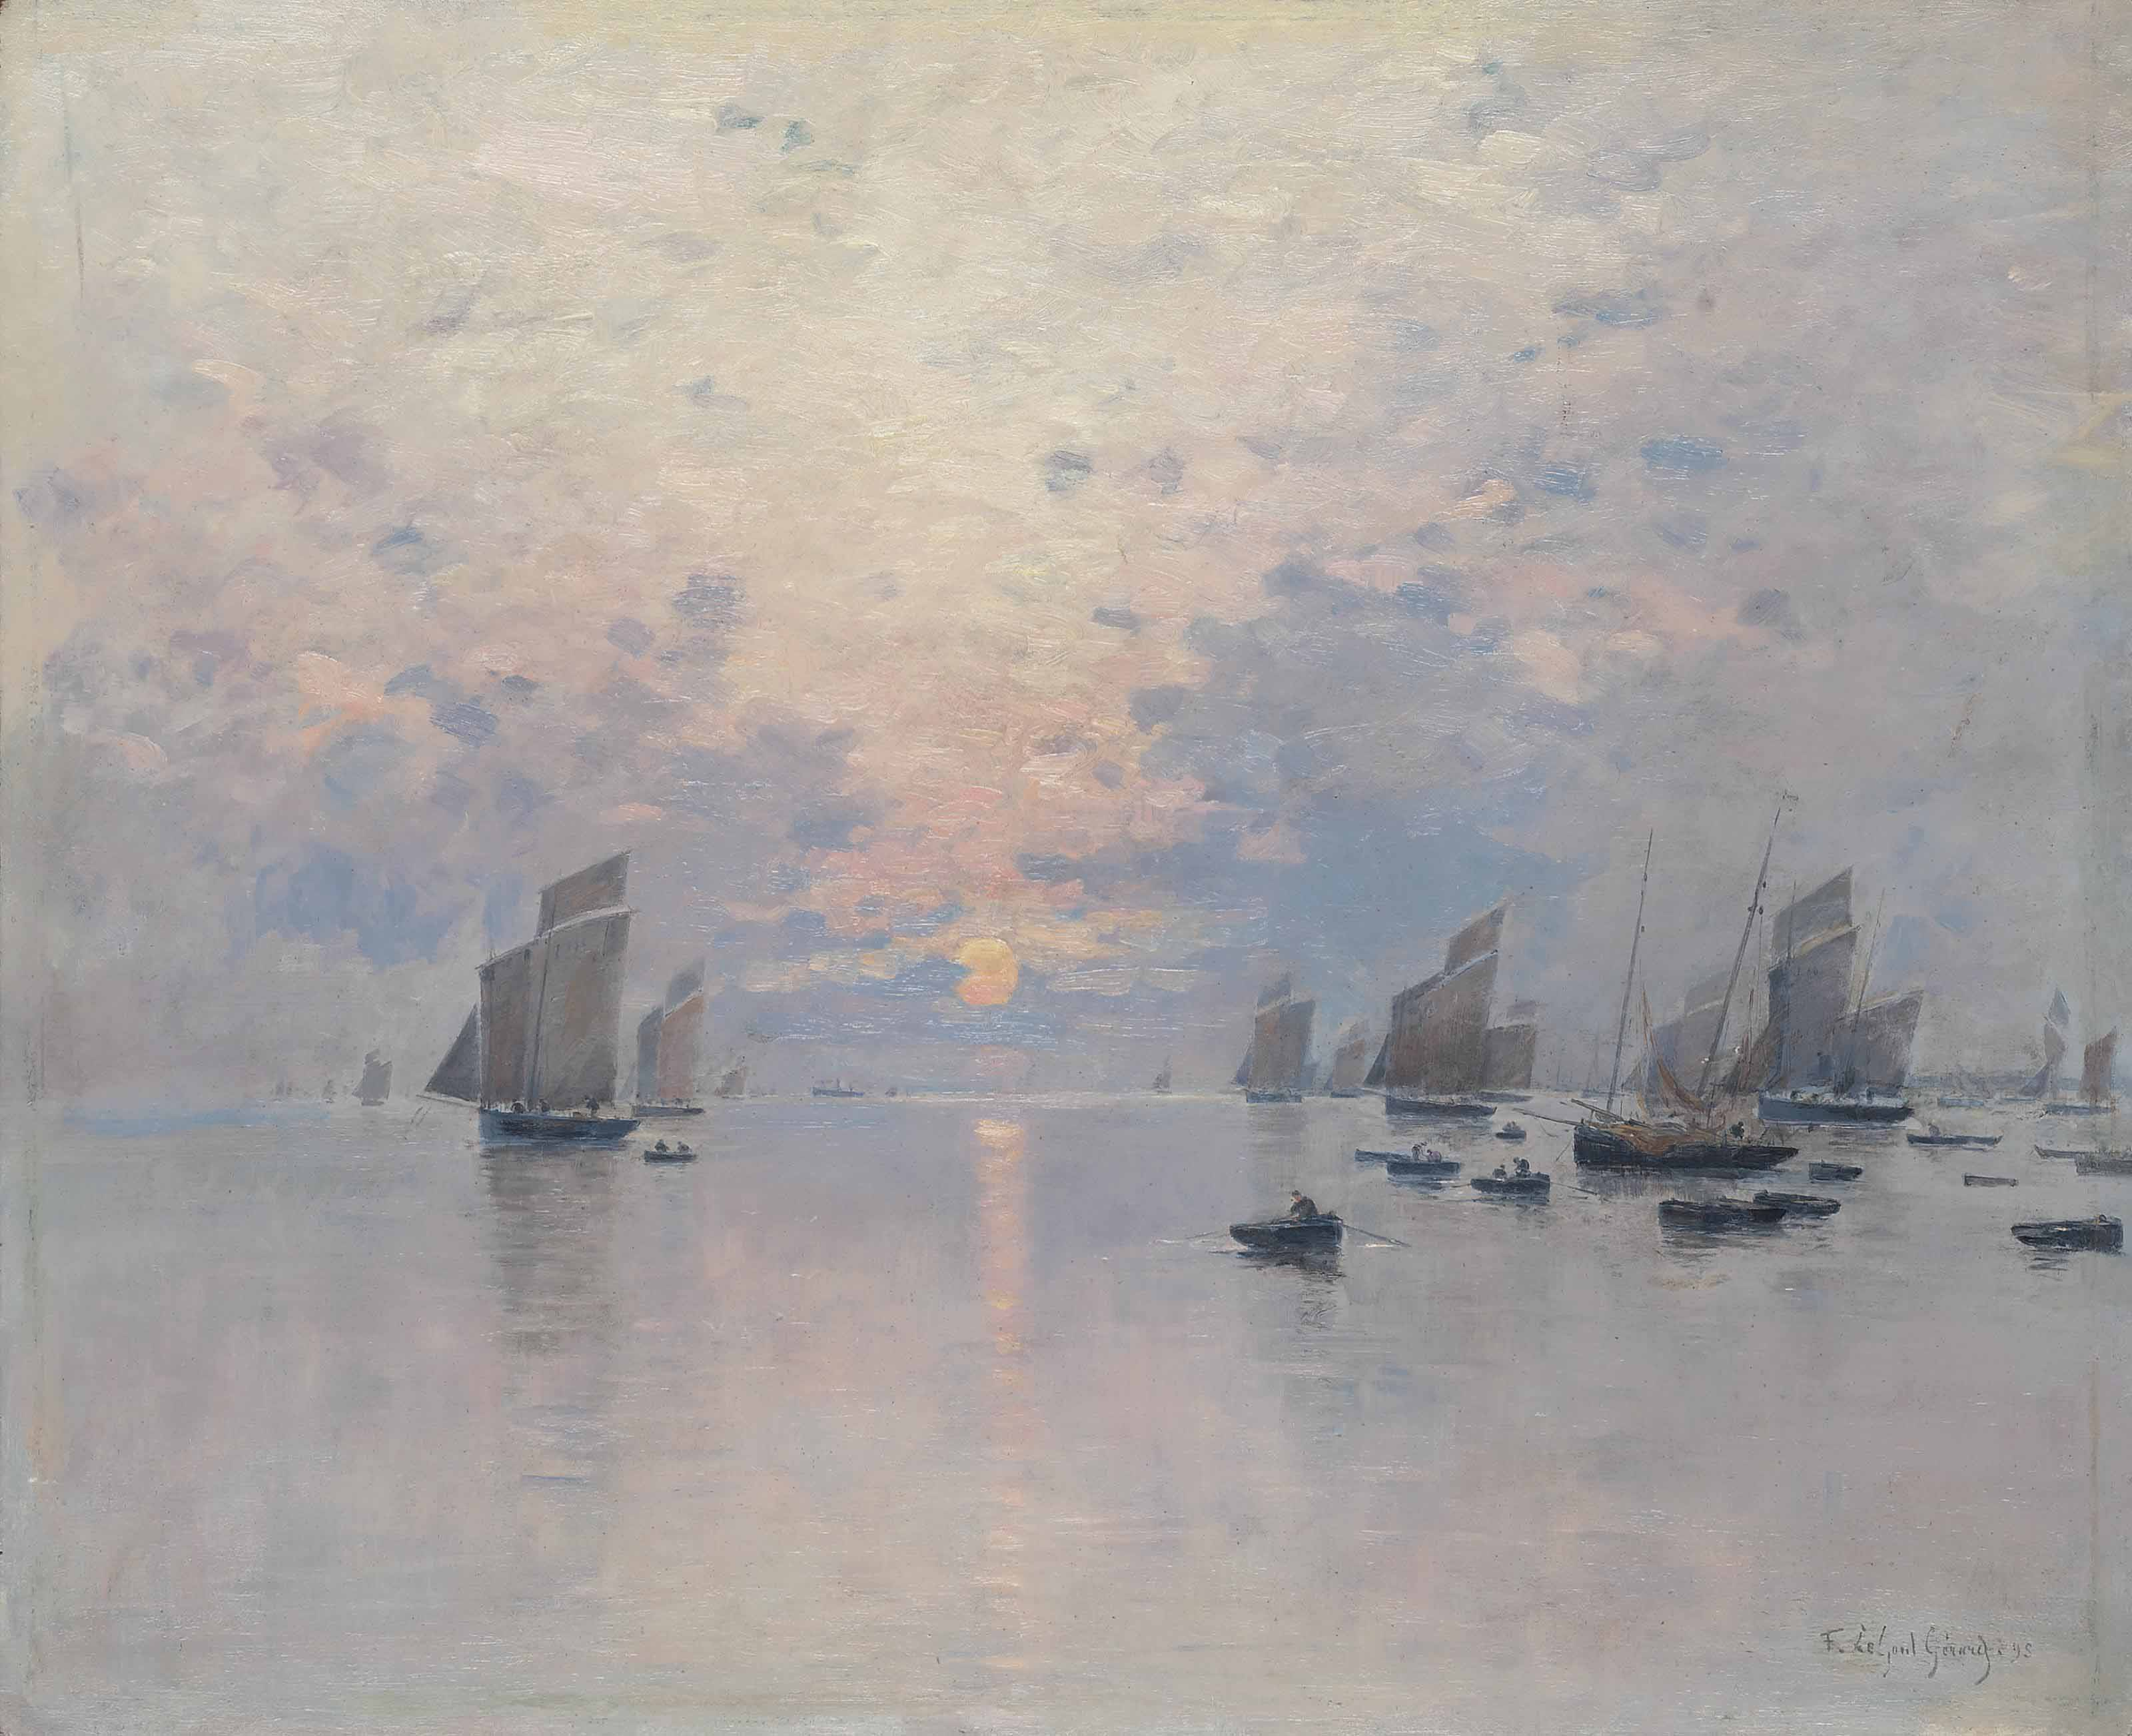 Boats at dusk, possibly Concarneau